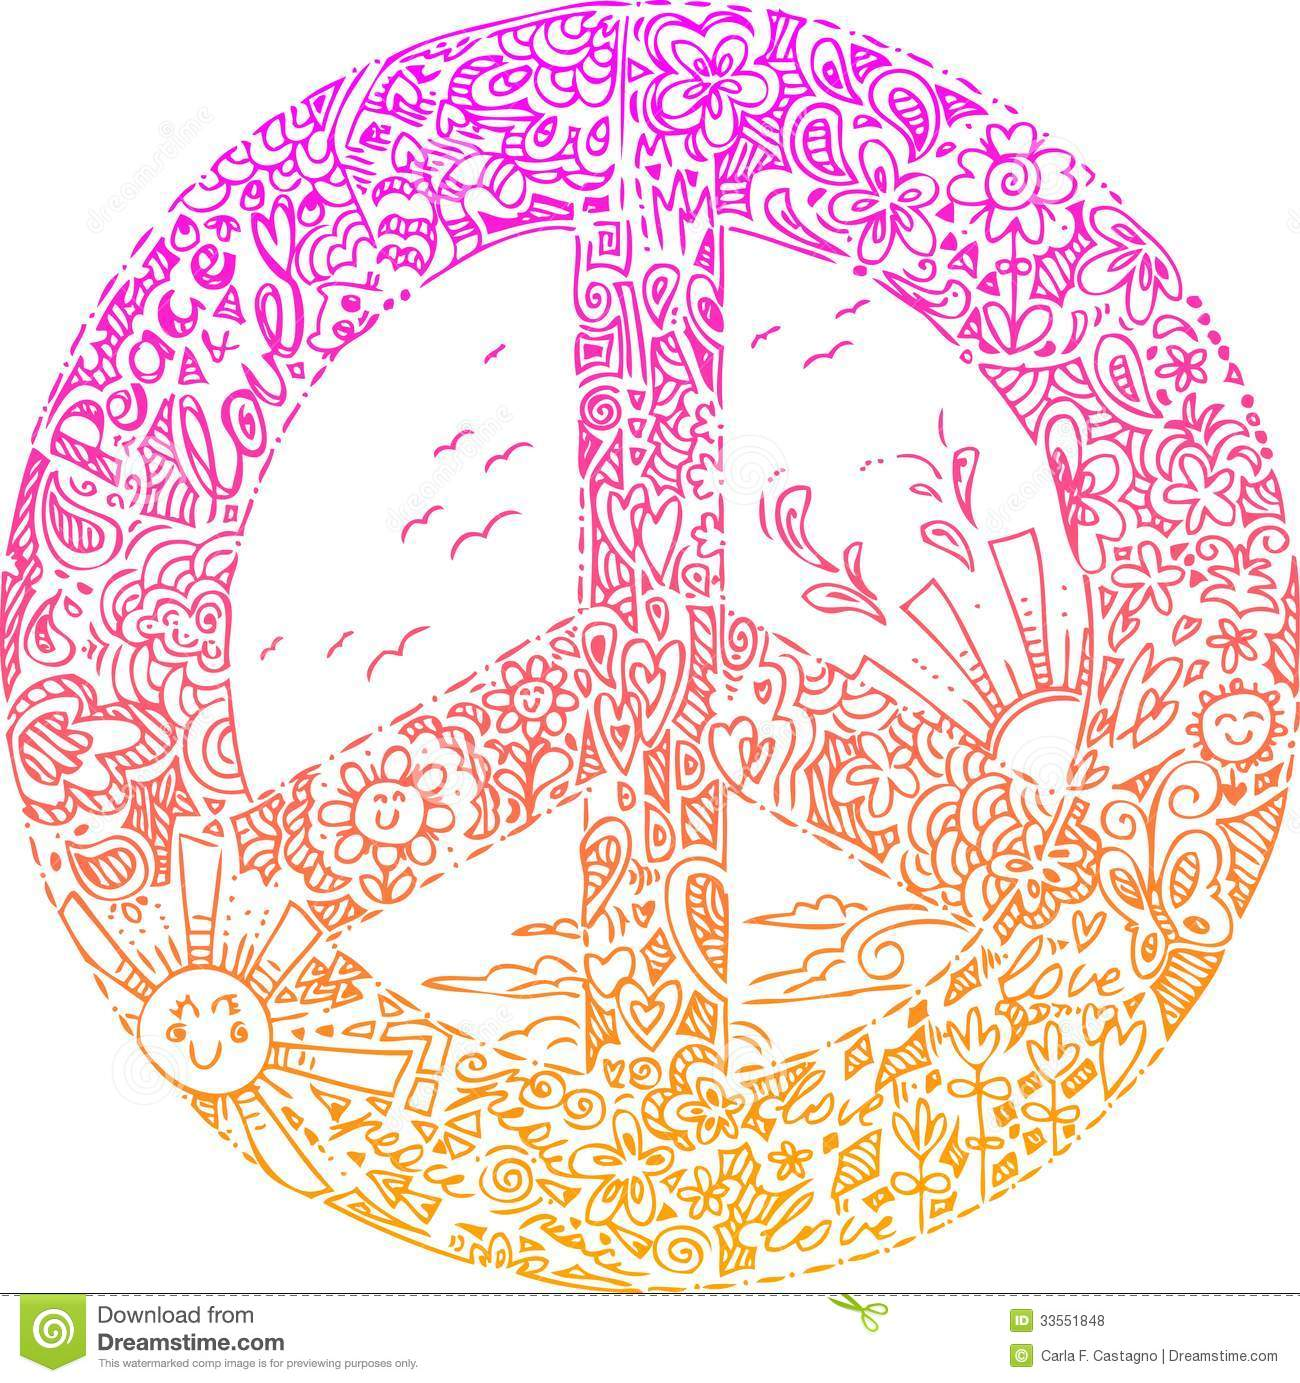 Pink Peace Symbol Sketched Doodles Royalty Free Stock Photos Image 33551848